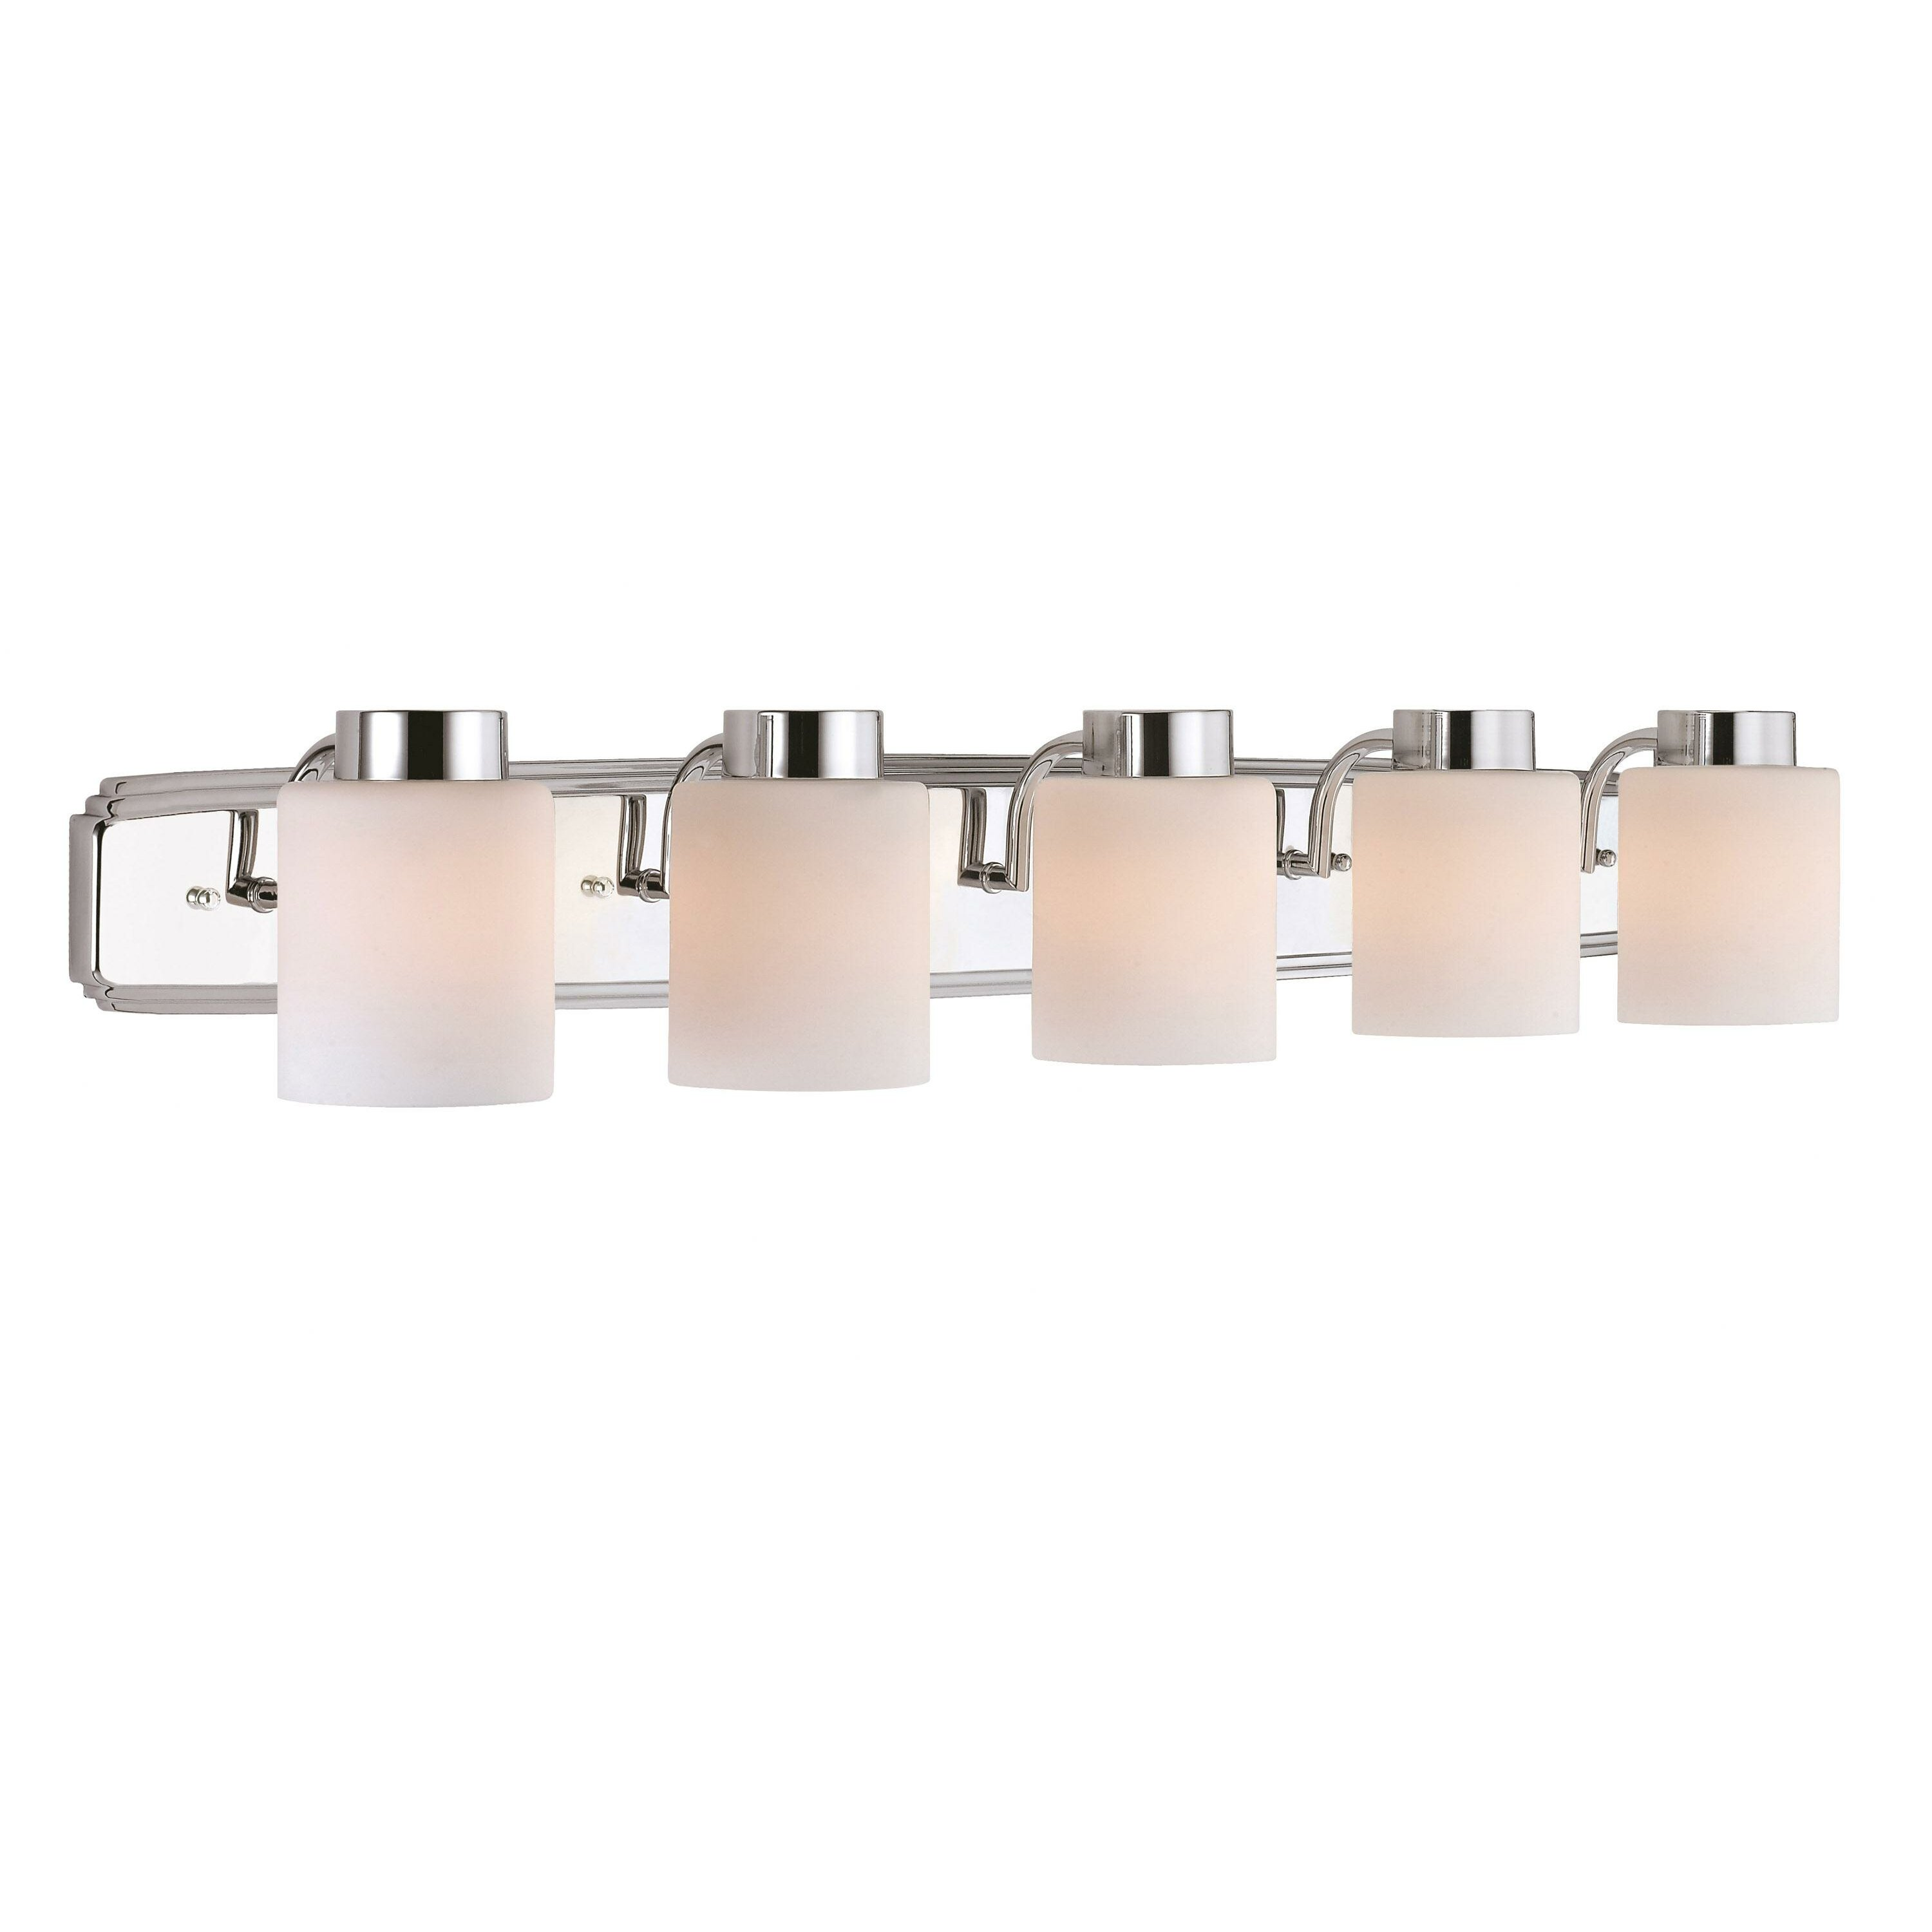 Bathroom vanity lights brushed nickel - Eddins 5 Light Vanity Light